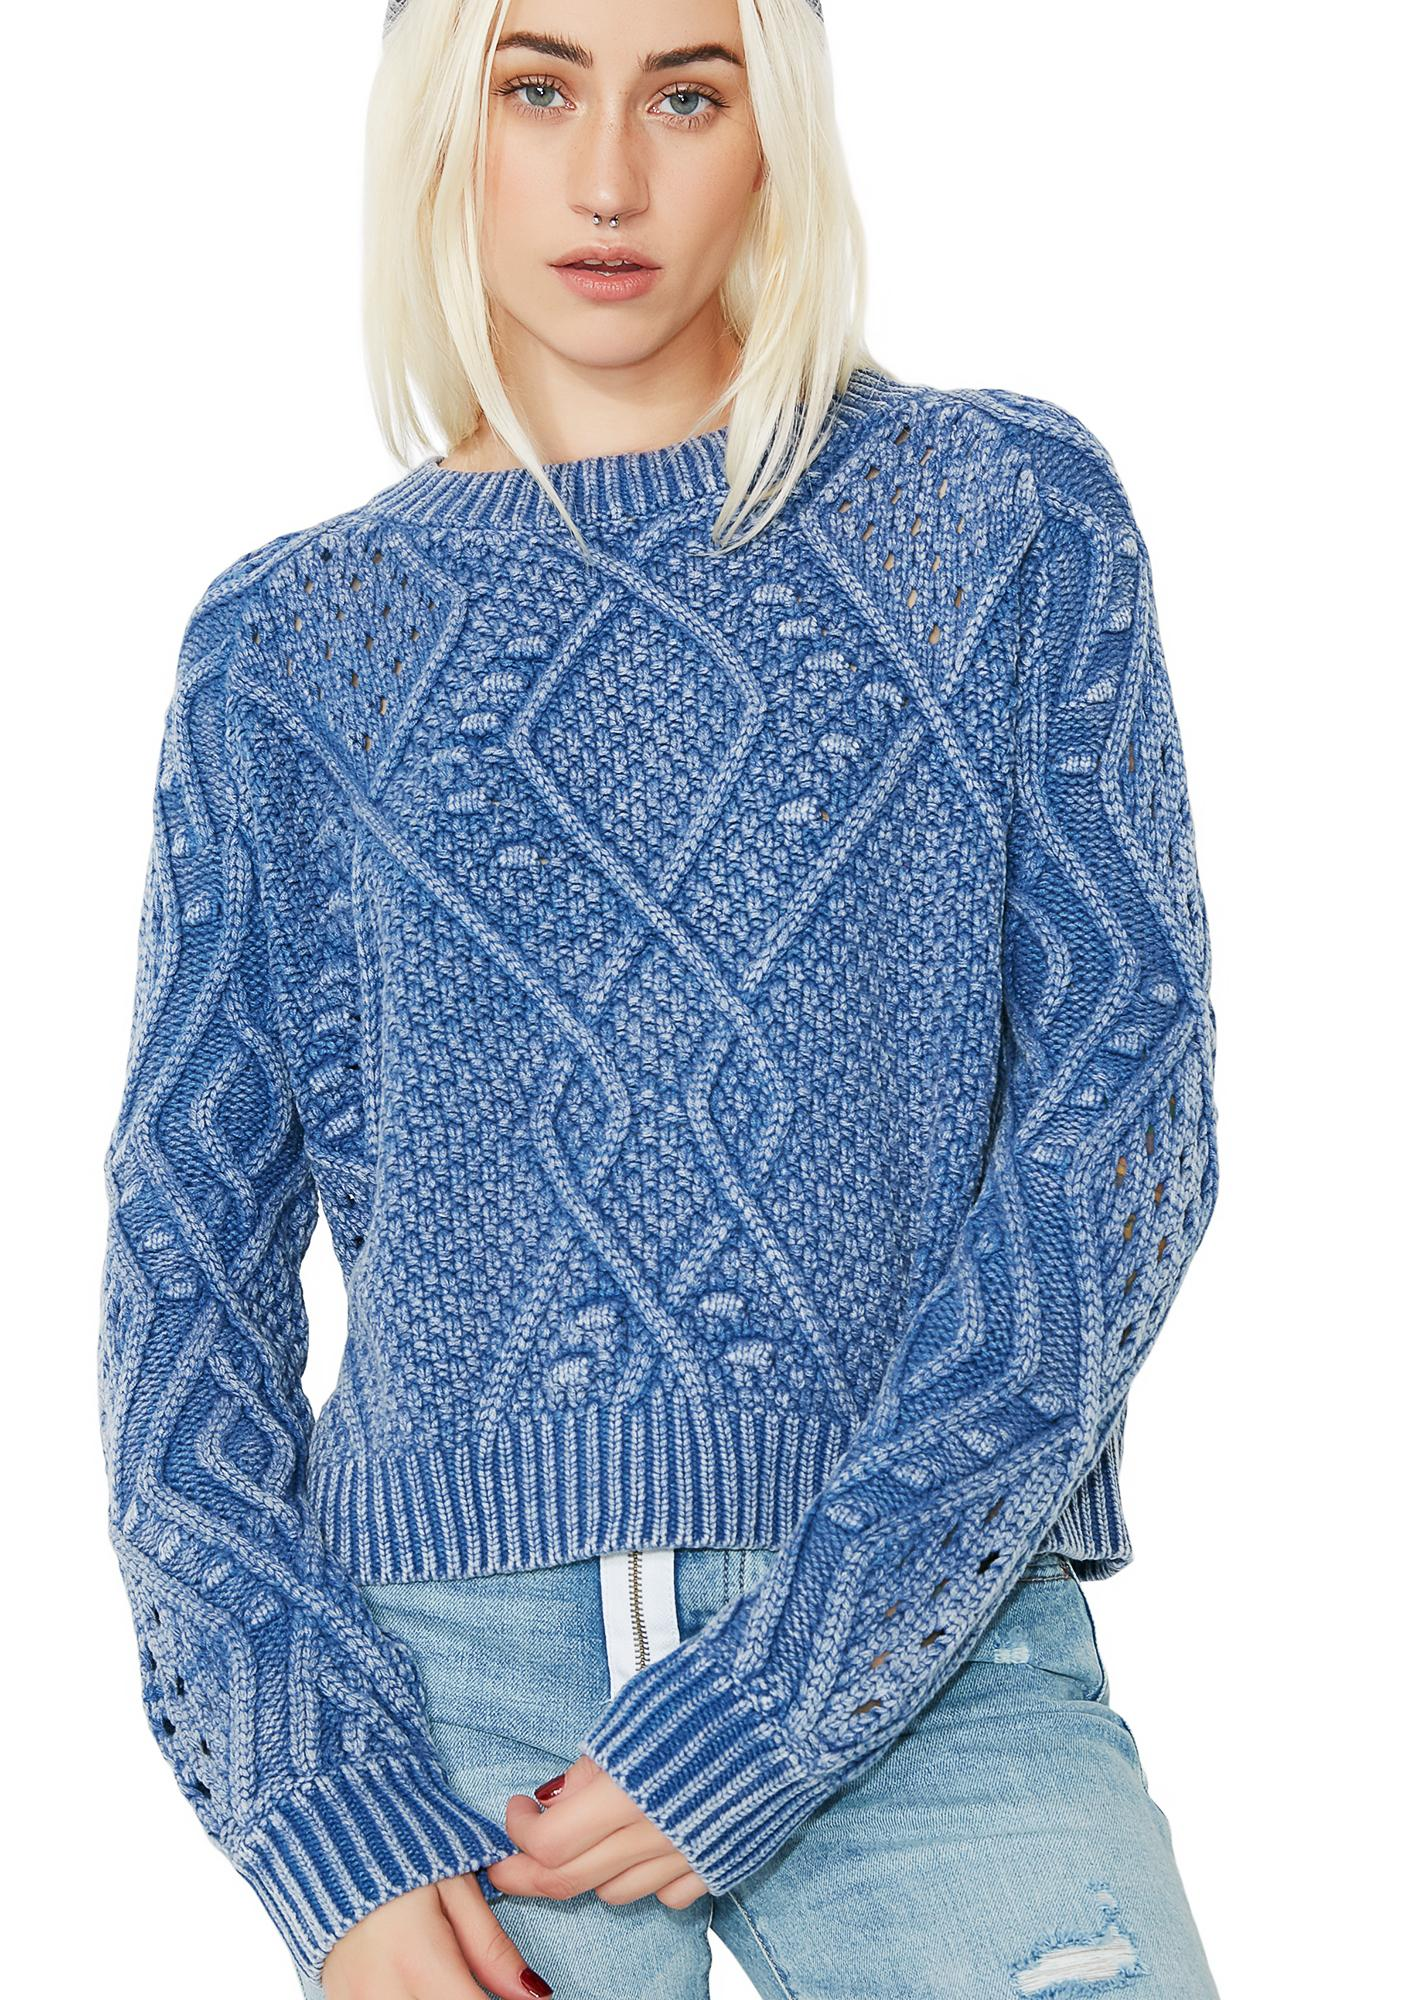 Chill Pill Knit Sweater